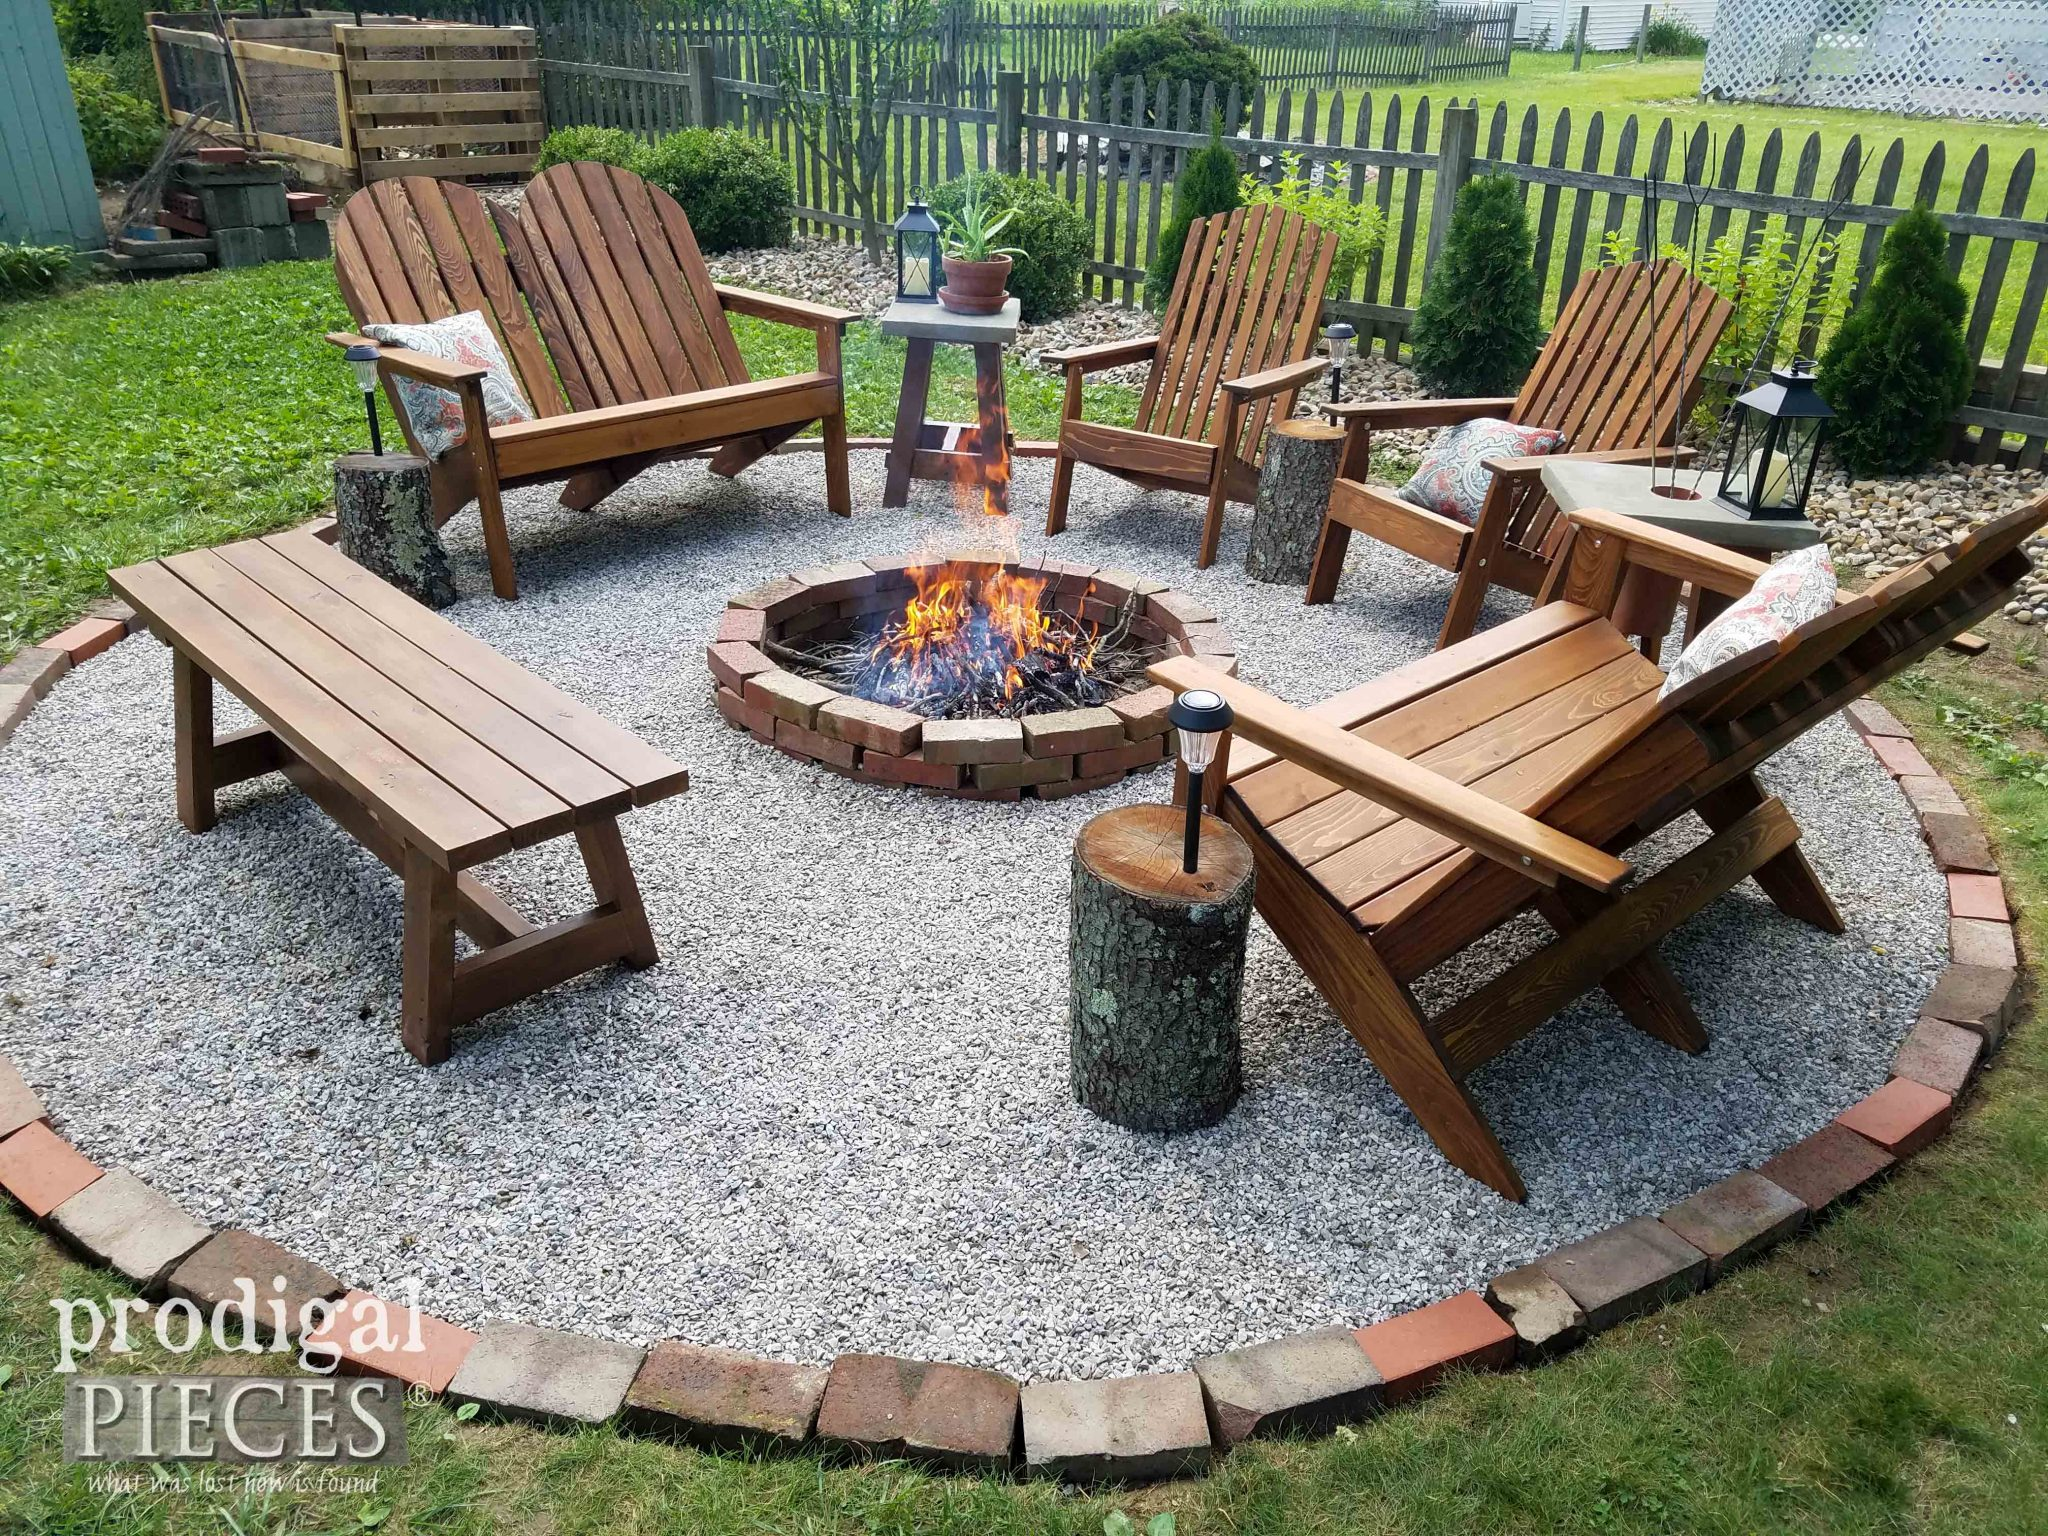 How to Build a DIY Fire Pit in a Day by Prodigal Pieces | prodigalpieces.com